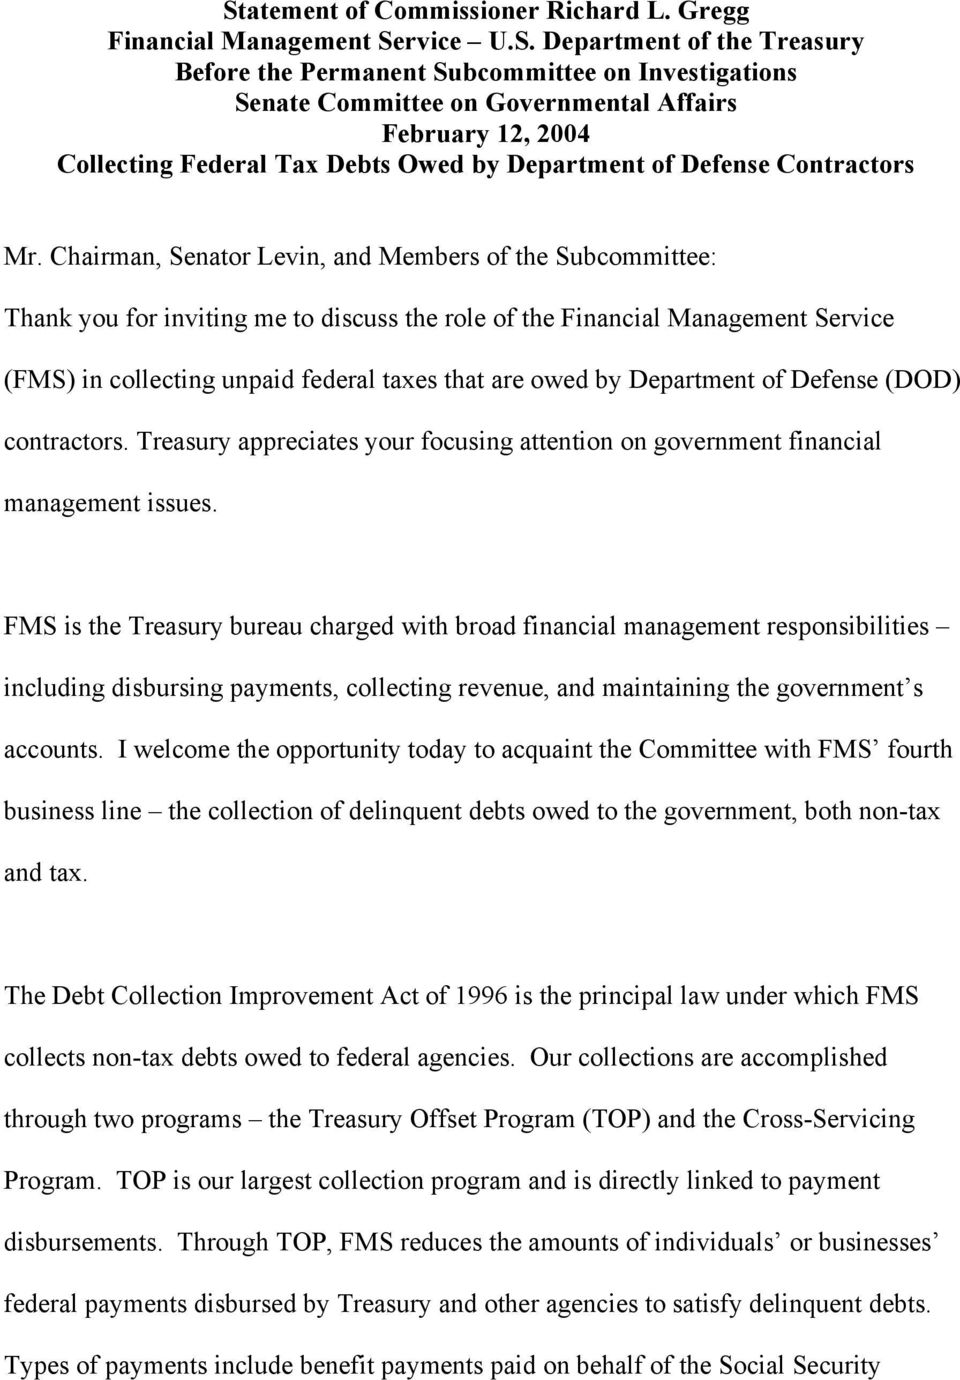 Chairman, Senator Levin, and Members of the Subcommittee: Thank you for inviting me to discuss the role of the Financial Management Service (FMS) in collecting unpaid federal taxes that are owed by